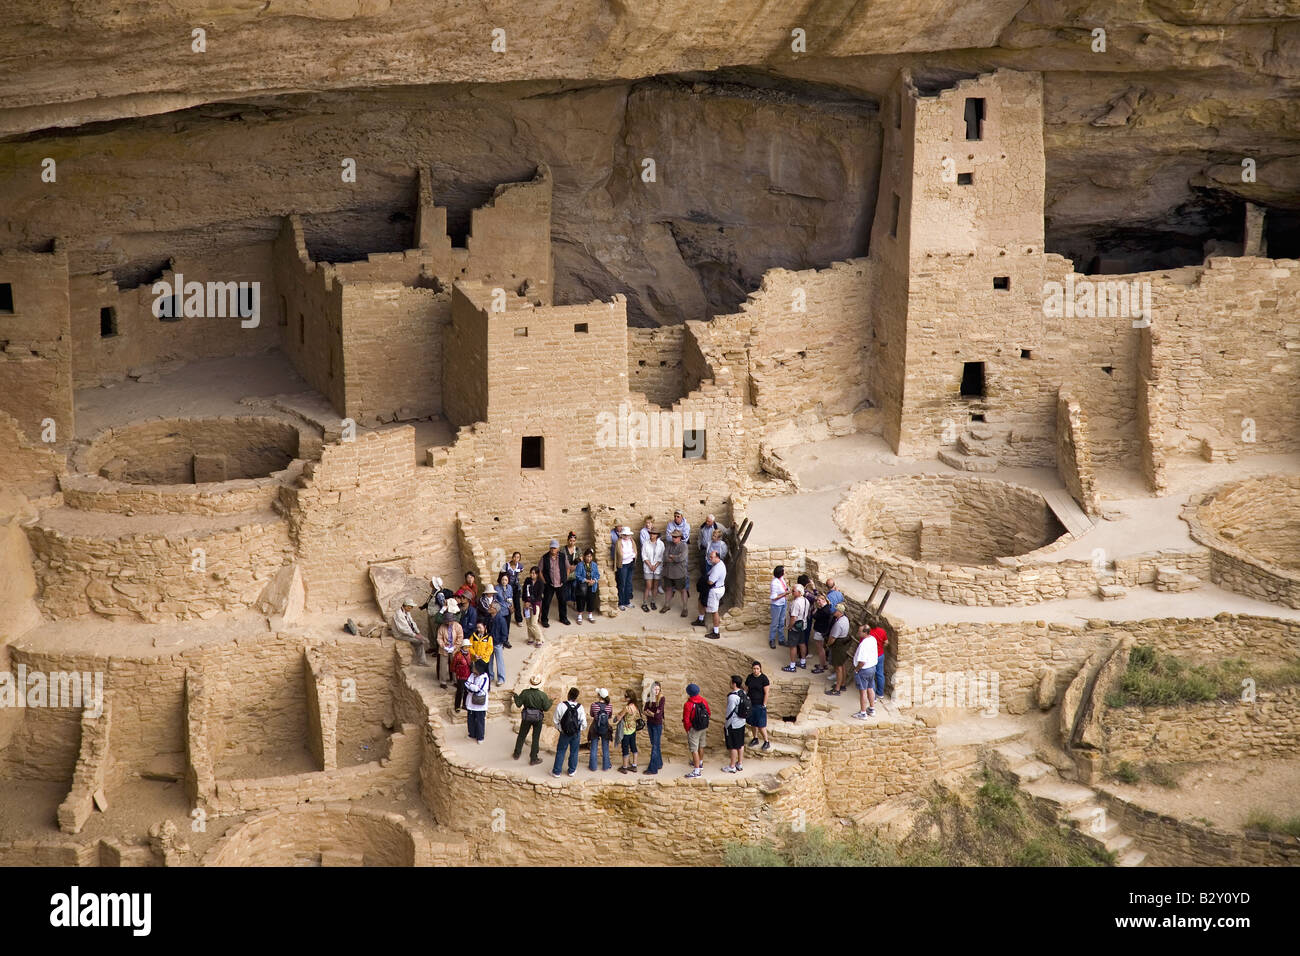 af61f3b1 Tourists viewing kiva at Cliff Palace cliff dwelling Indian ruin, Mesa  Verde National Park, Colorado